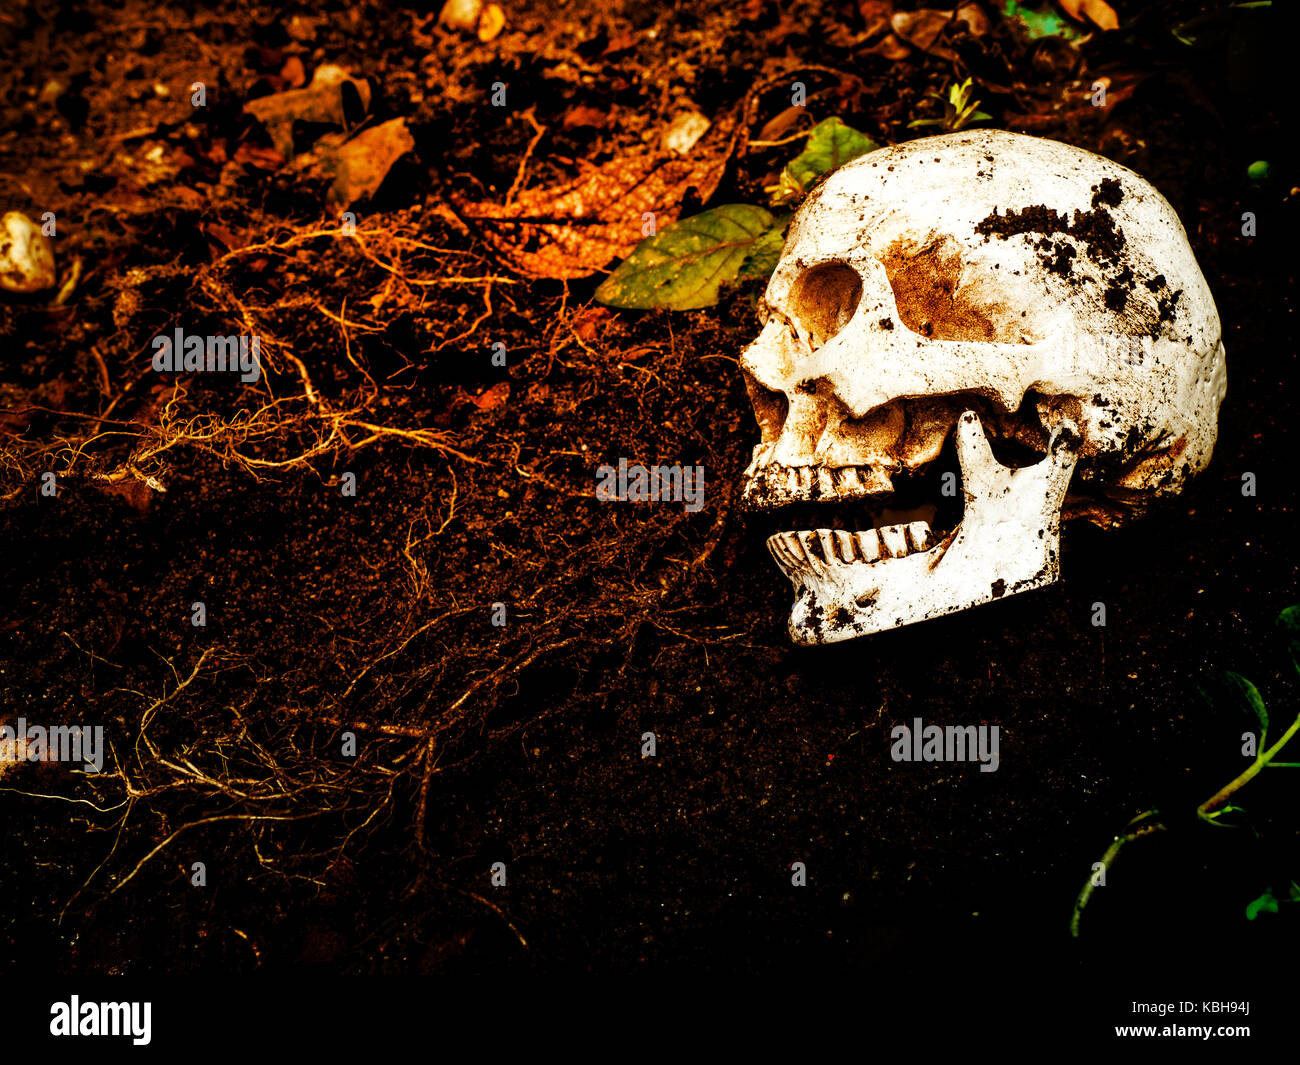 Beside of human skull buried in the soil.The skull has dirt attached to the skull.concept of death and Halloween - Stock Image